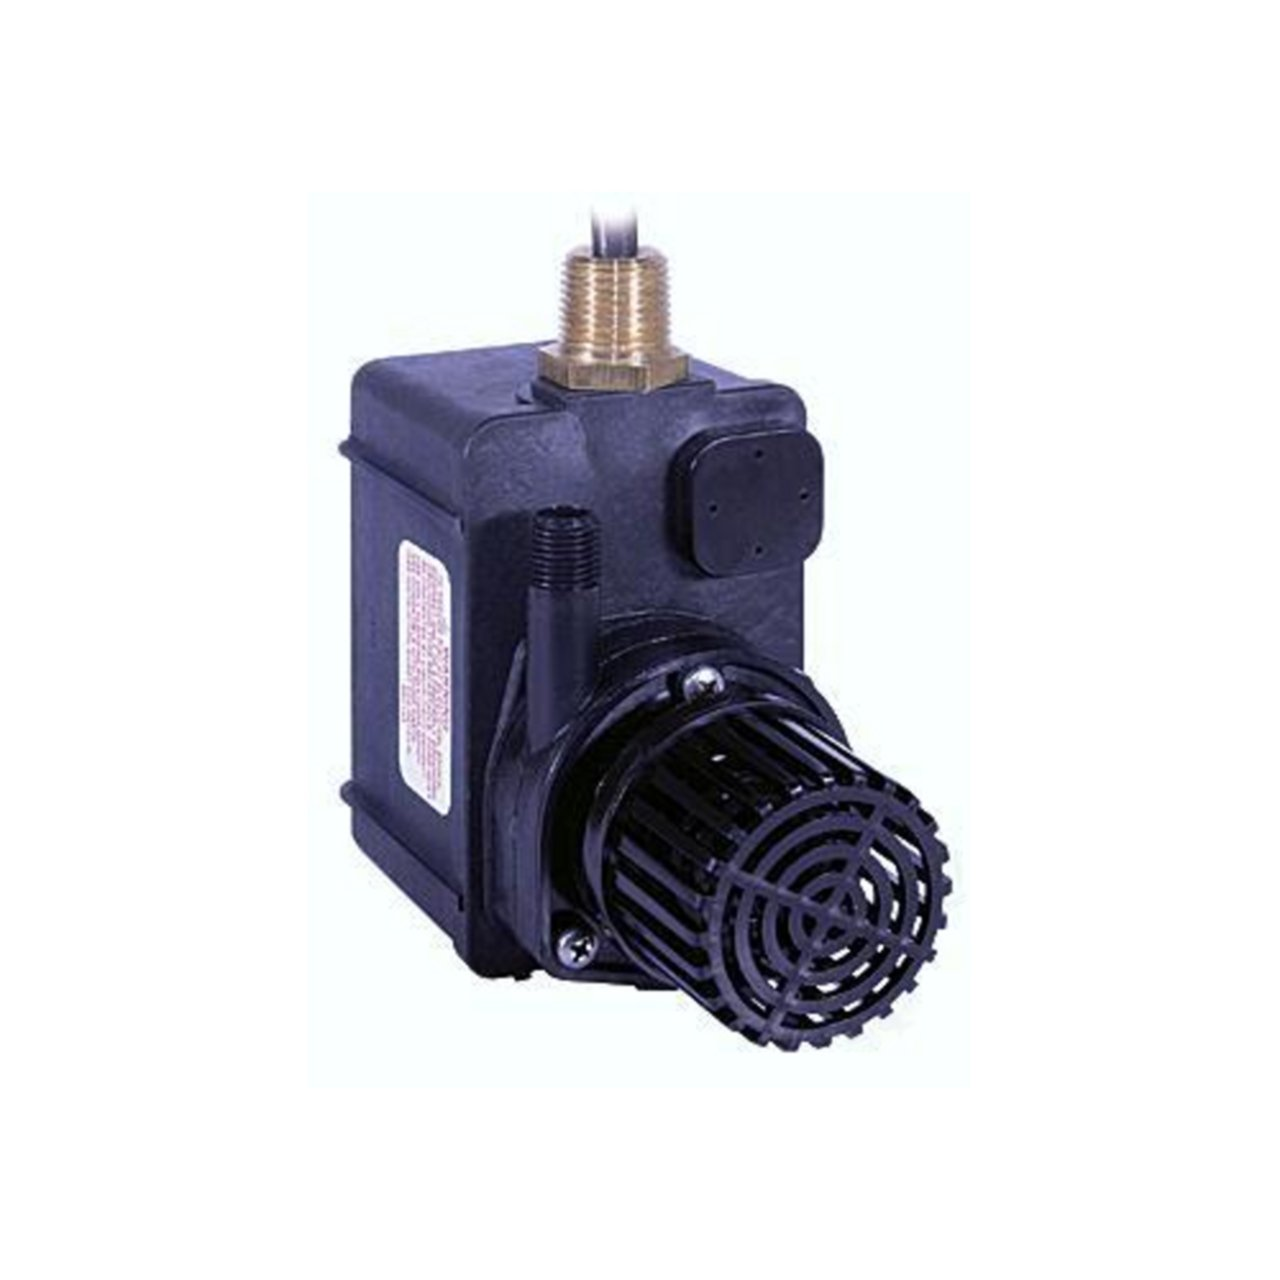 Little Giant 518550 PE-2YSA Submersible Parts Washer Pump, 300 Gallons Per Hour